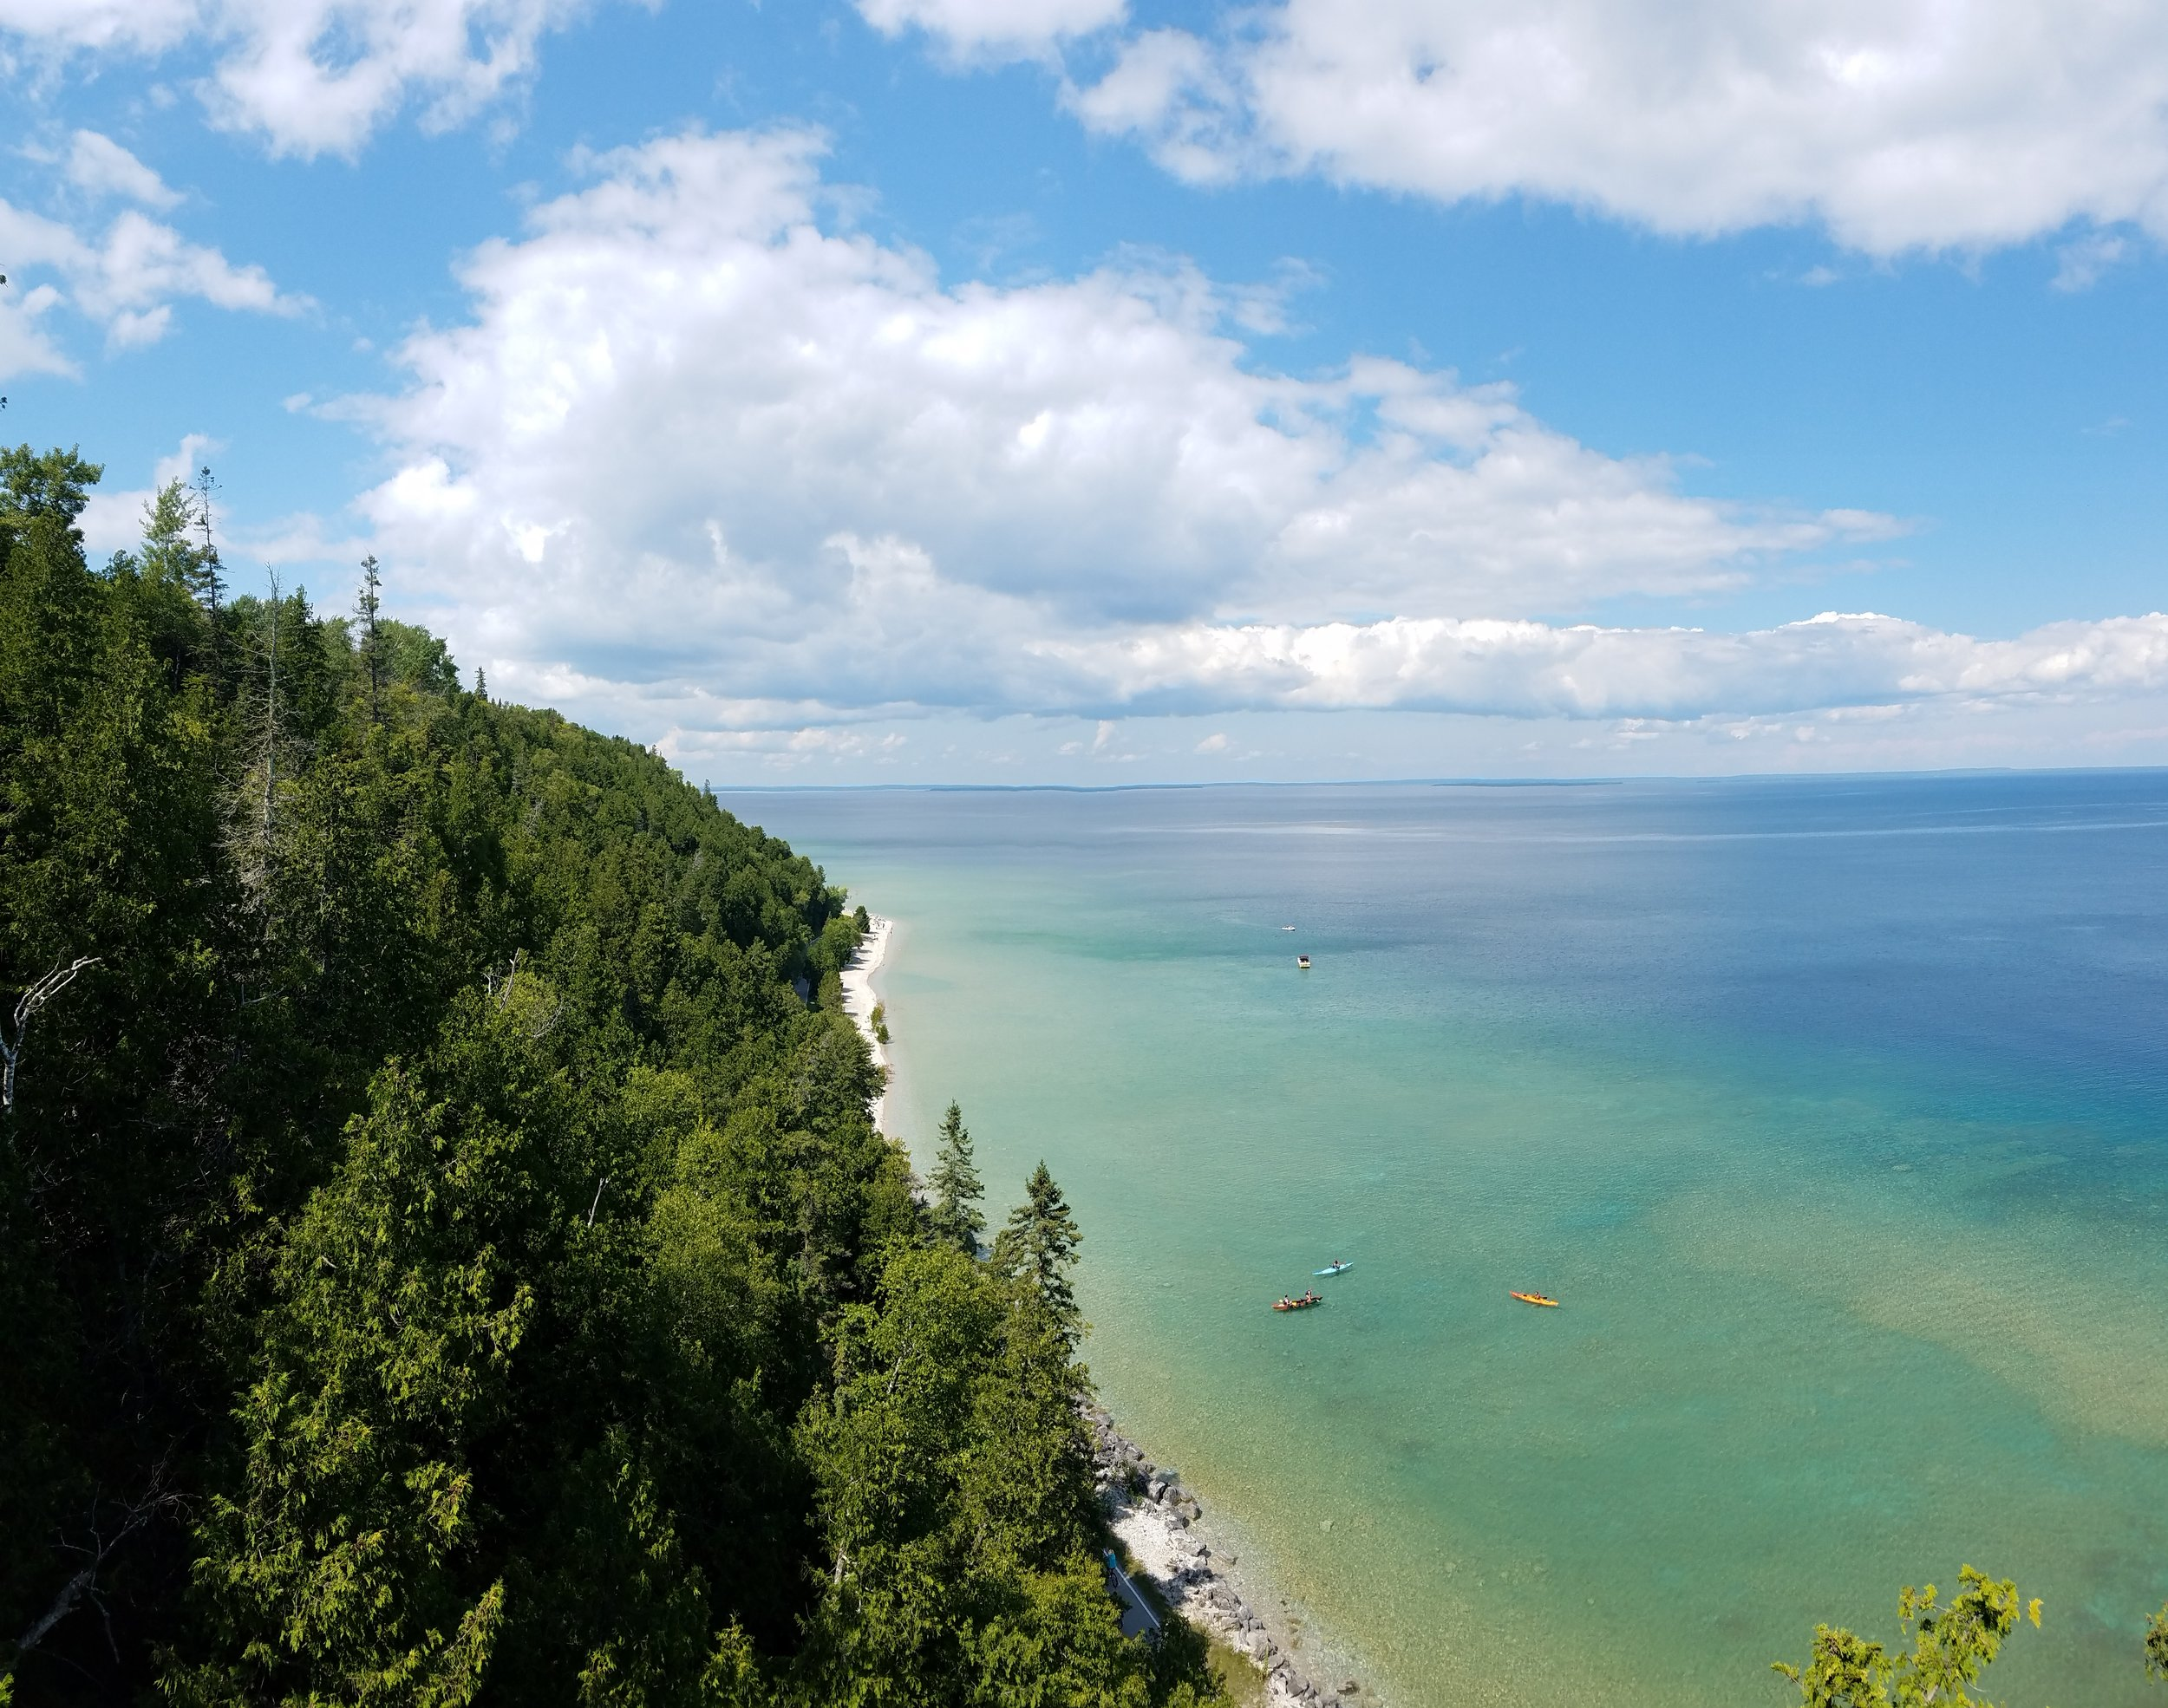 Looking northeast-ish from Mackinac Island's Arch Rock one can see that varying shades of blue and green, with other optional colors intermittently sprinkled in, can make for an eyeball-pleasing experience. Perhaps you'd like to take it all in with a  kayak tour from Great Turtle ?